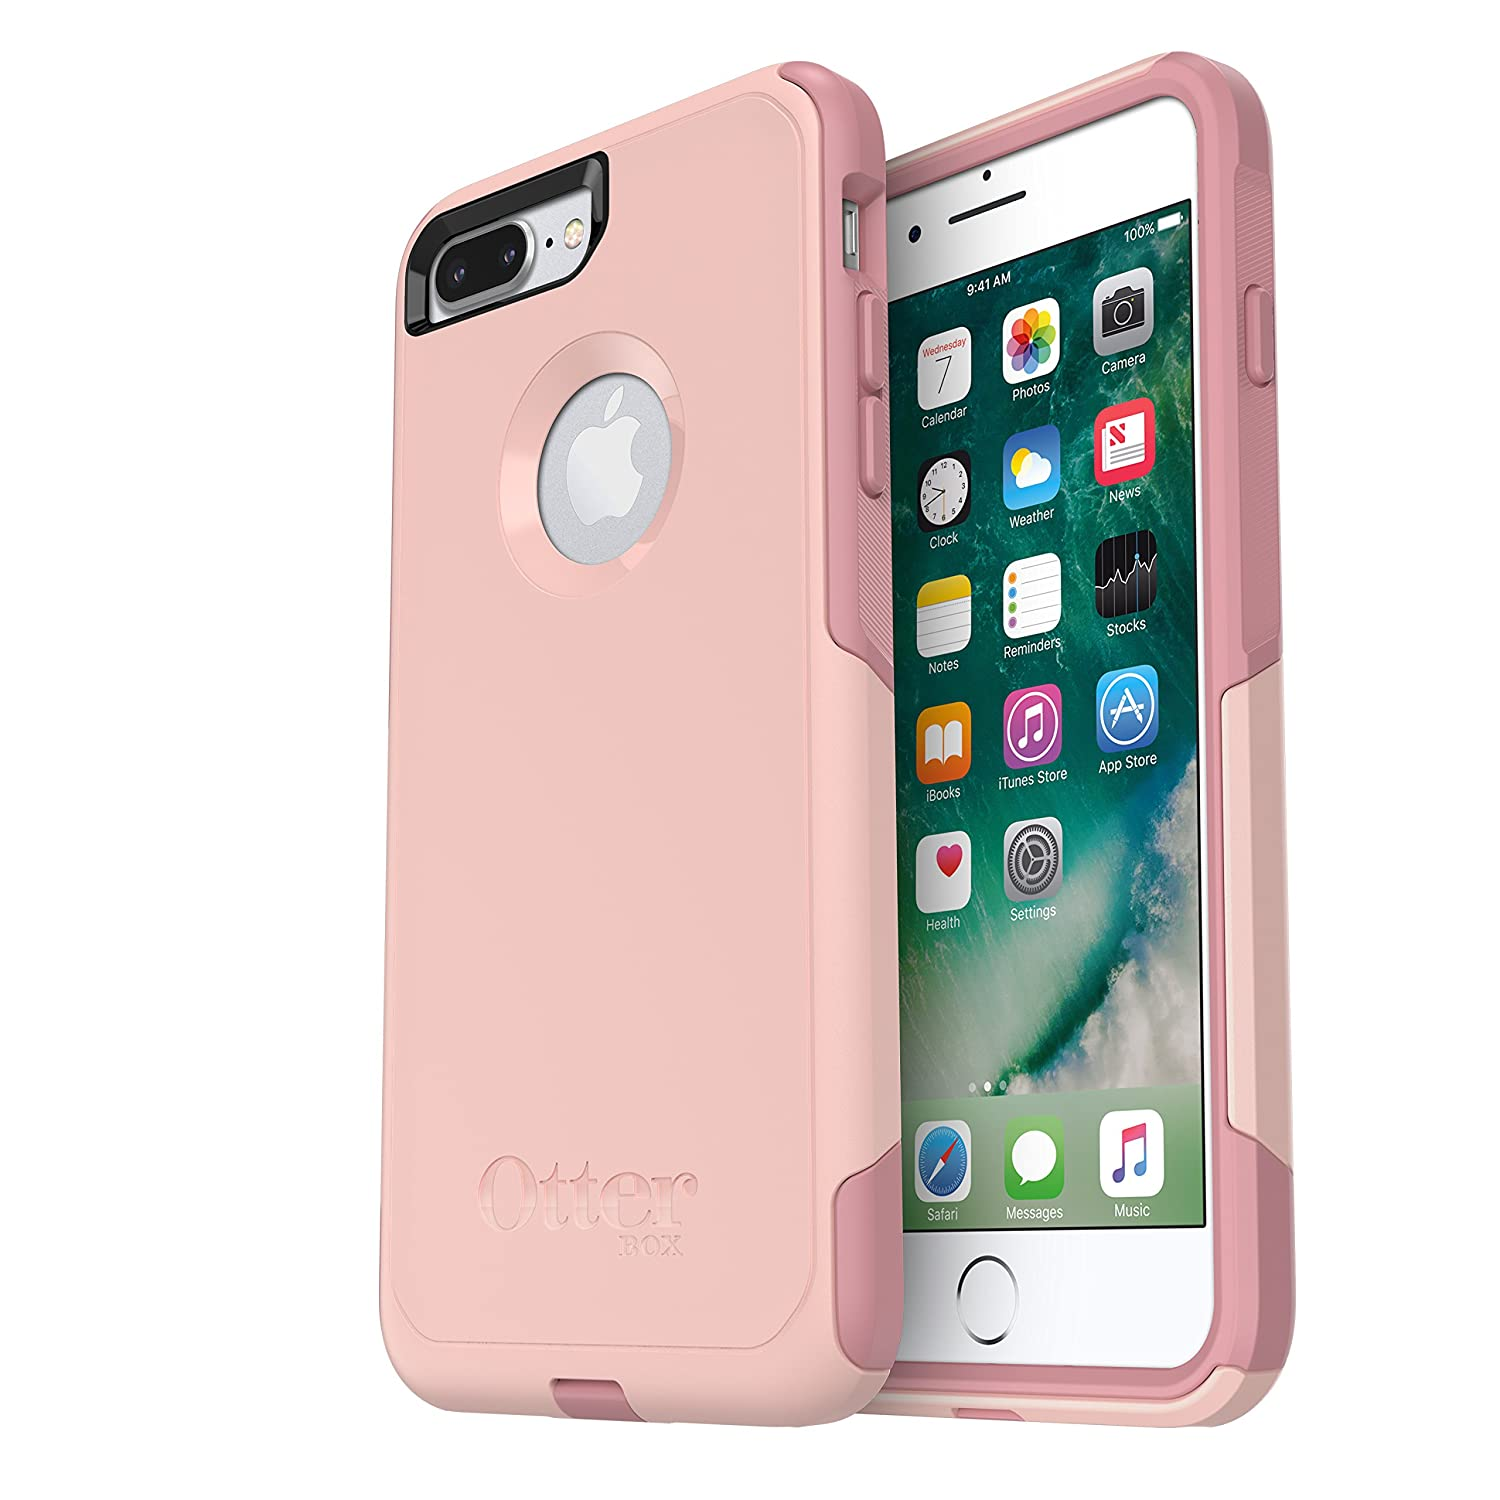 the latest 78dbc e5069 OtterBox COMMUTER SERIES Case for iPhone 8 Plus & iPhone 7 Plus (ONLY) -  Frustrations Free Packaging - BALLET WAY (PINK SALT/BLUSH)